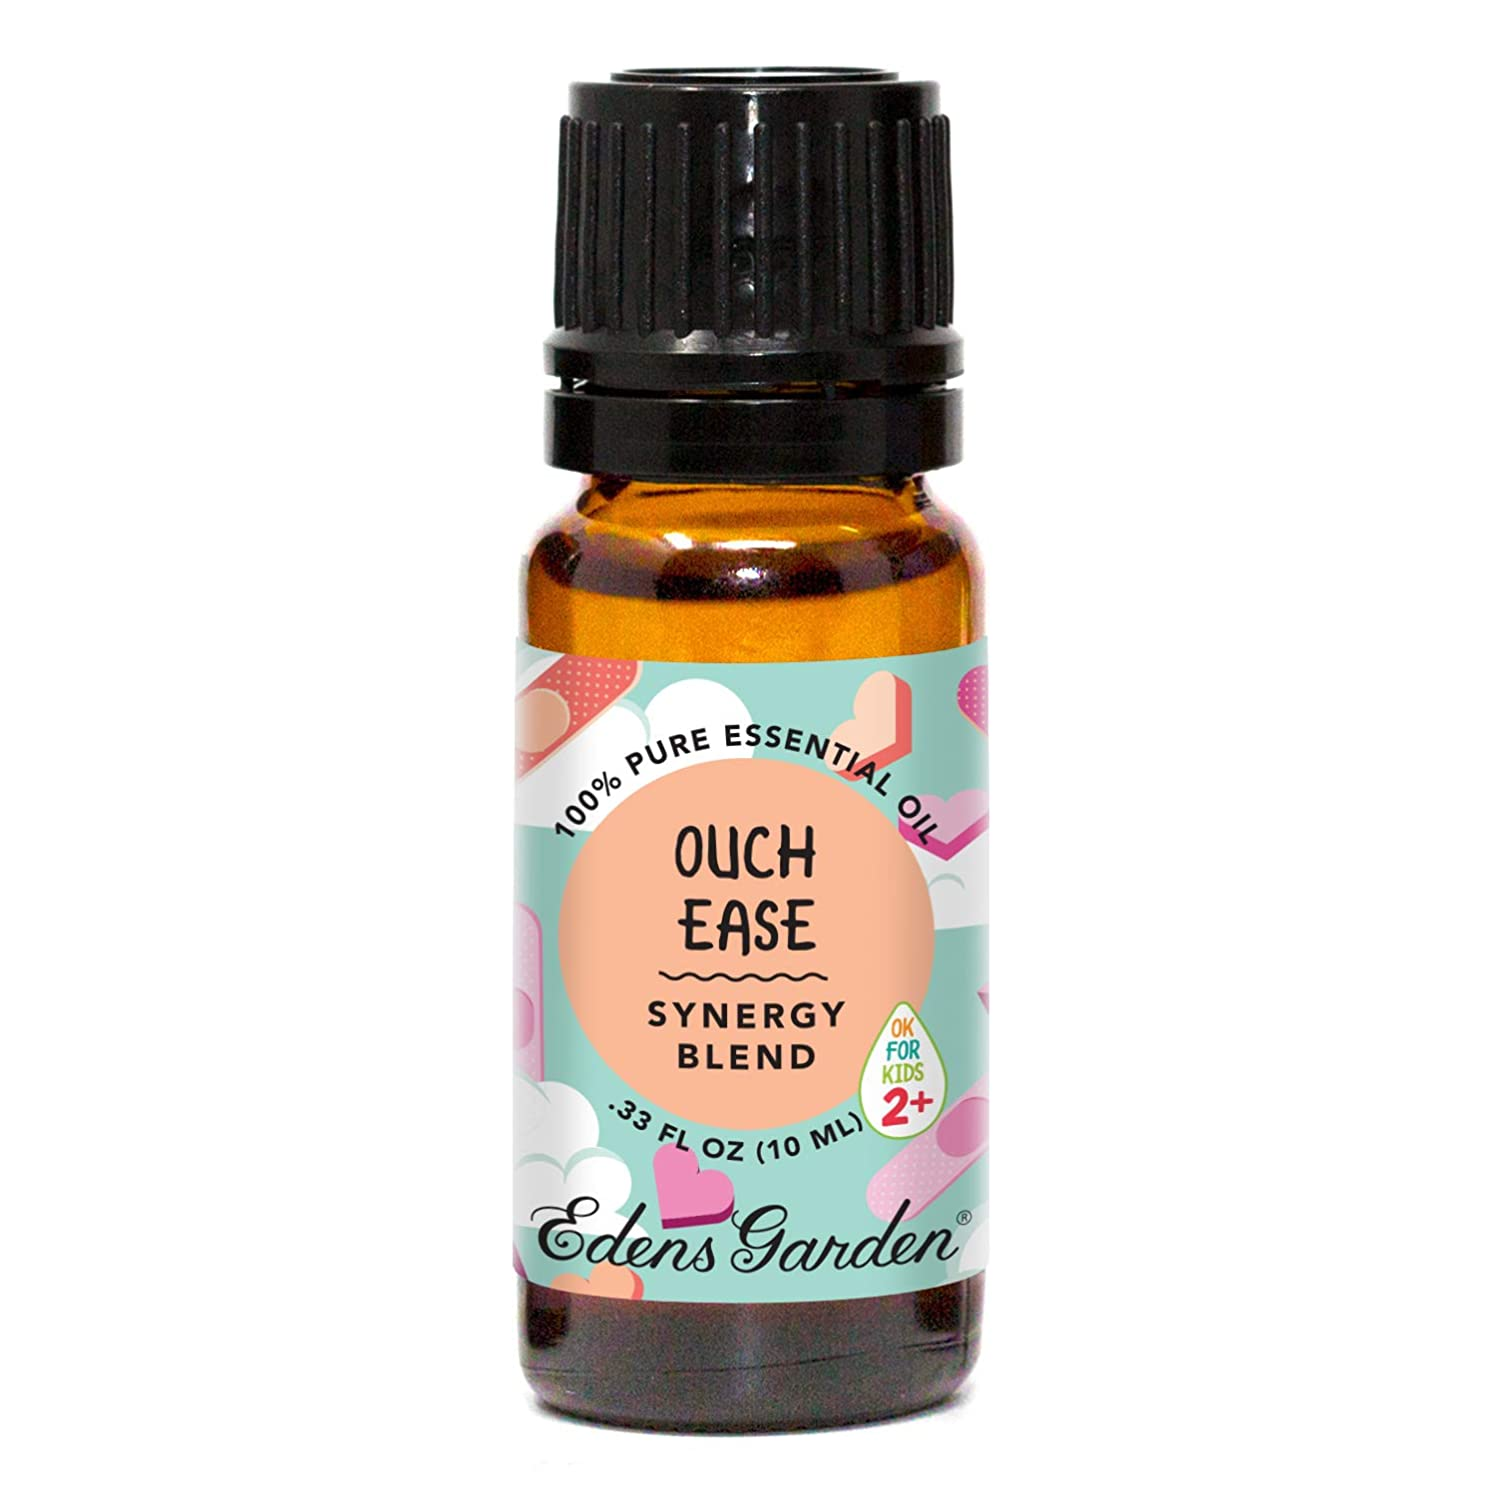 "Edens Garden Ouch Ease""OK For Kids"" Essential Oil Synergy Blend, 100% Pure Therapeutic Grade (Child Safe 2+, Inflammation & Pain), 10 ml"